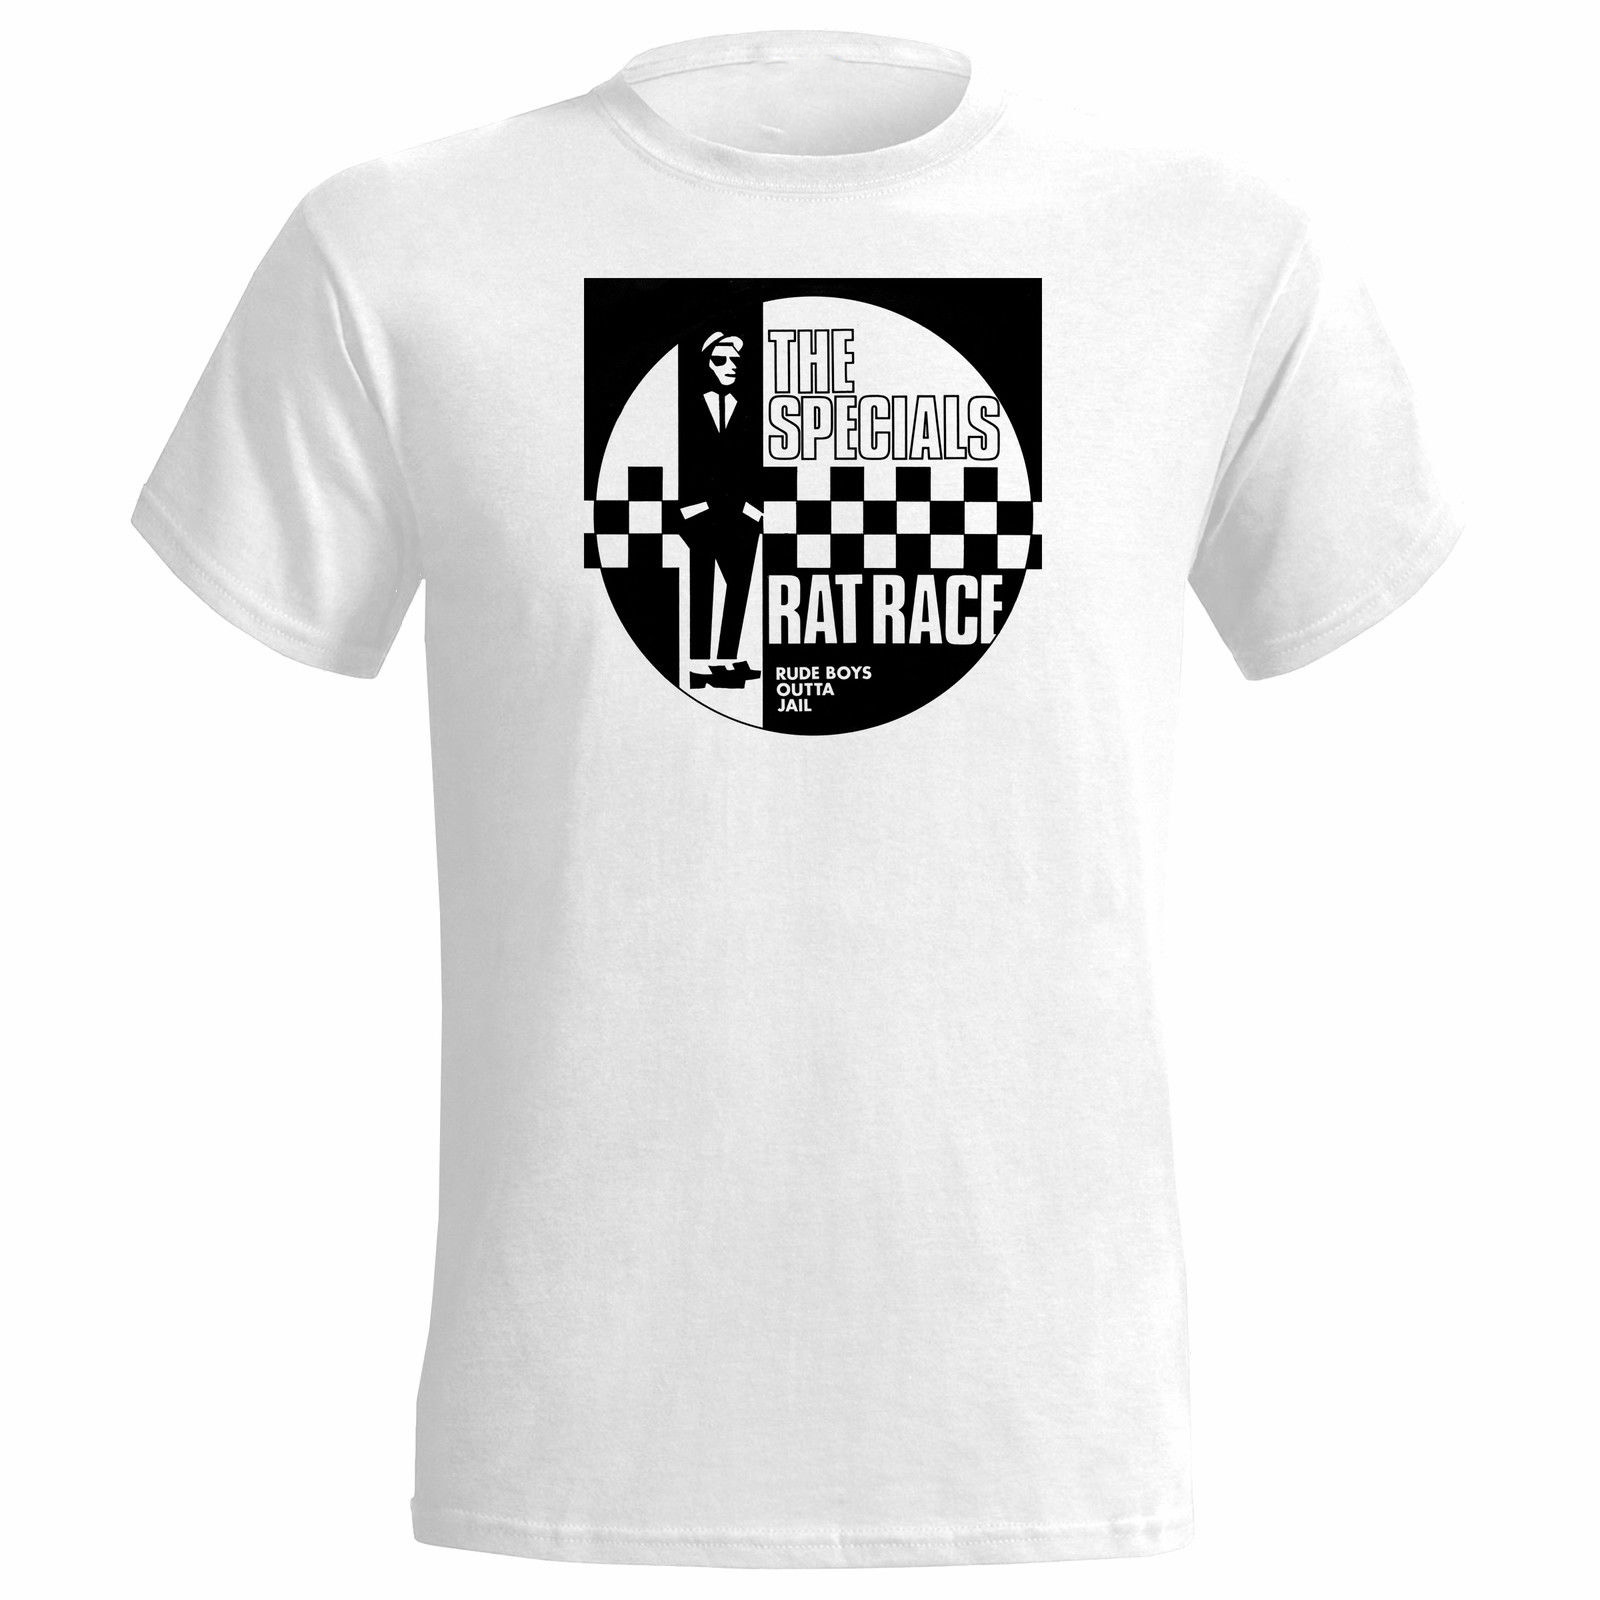 EXCLUSIVE TO SKA SHACK Collectors Edition white Limited THE SPECIALS T Shirt